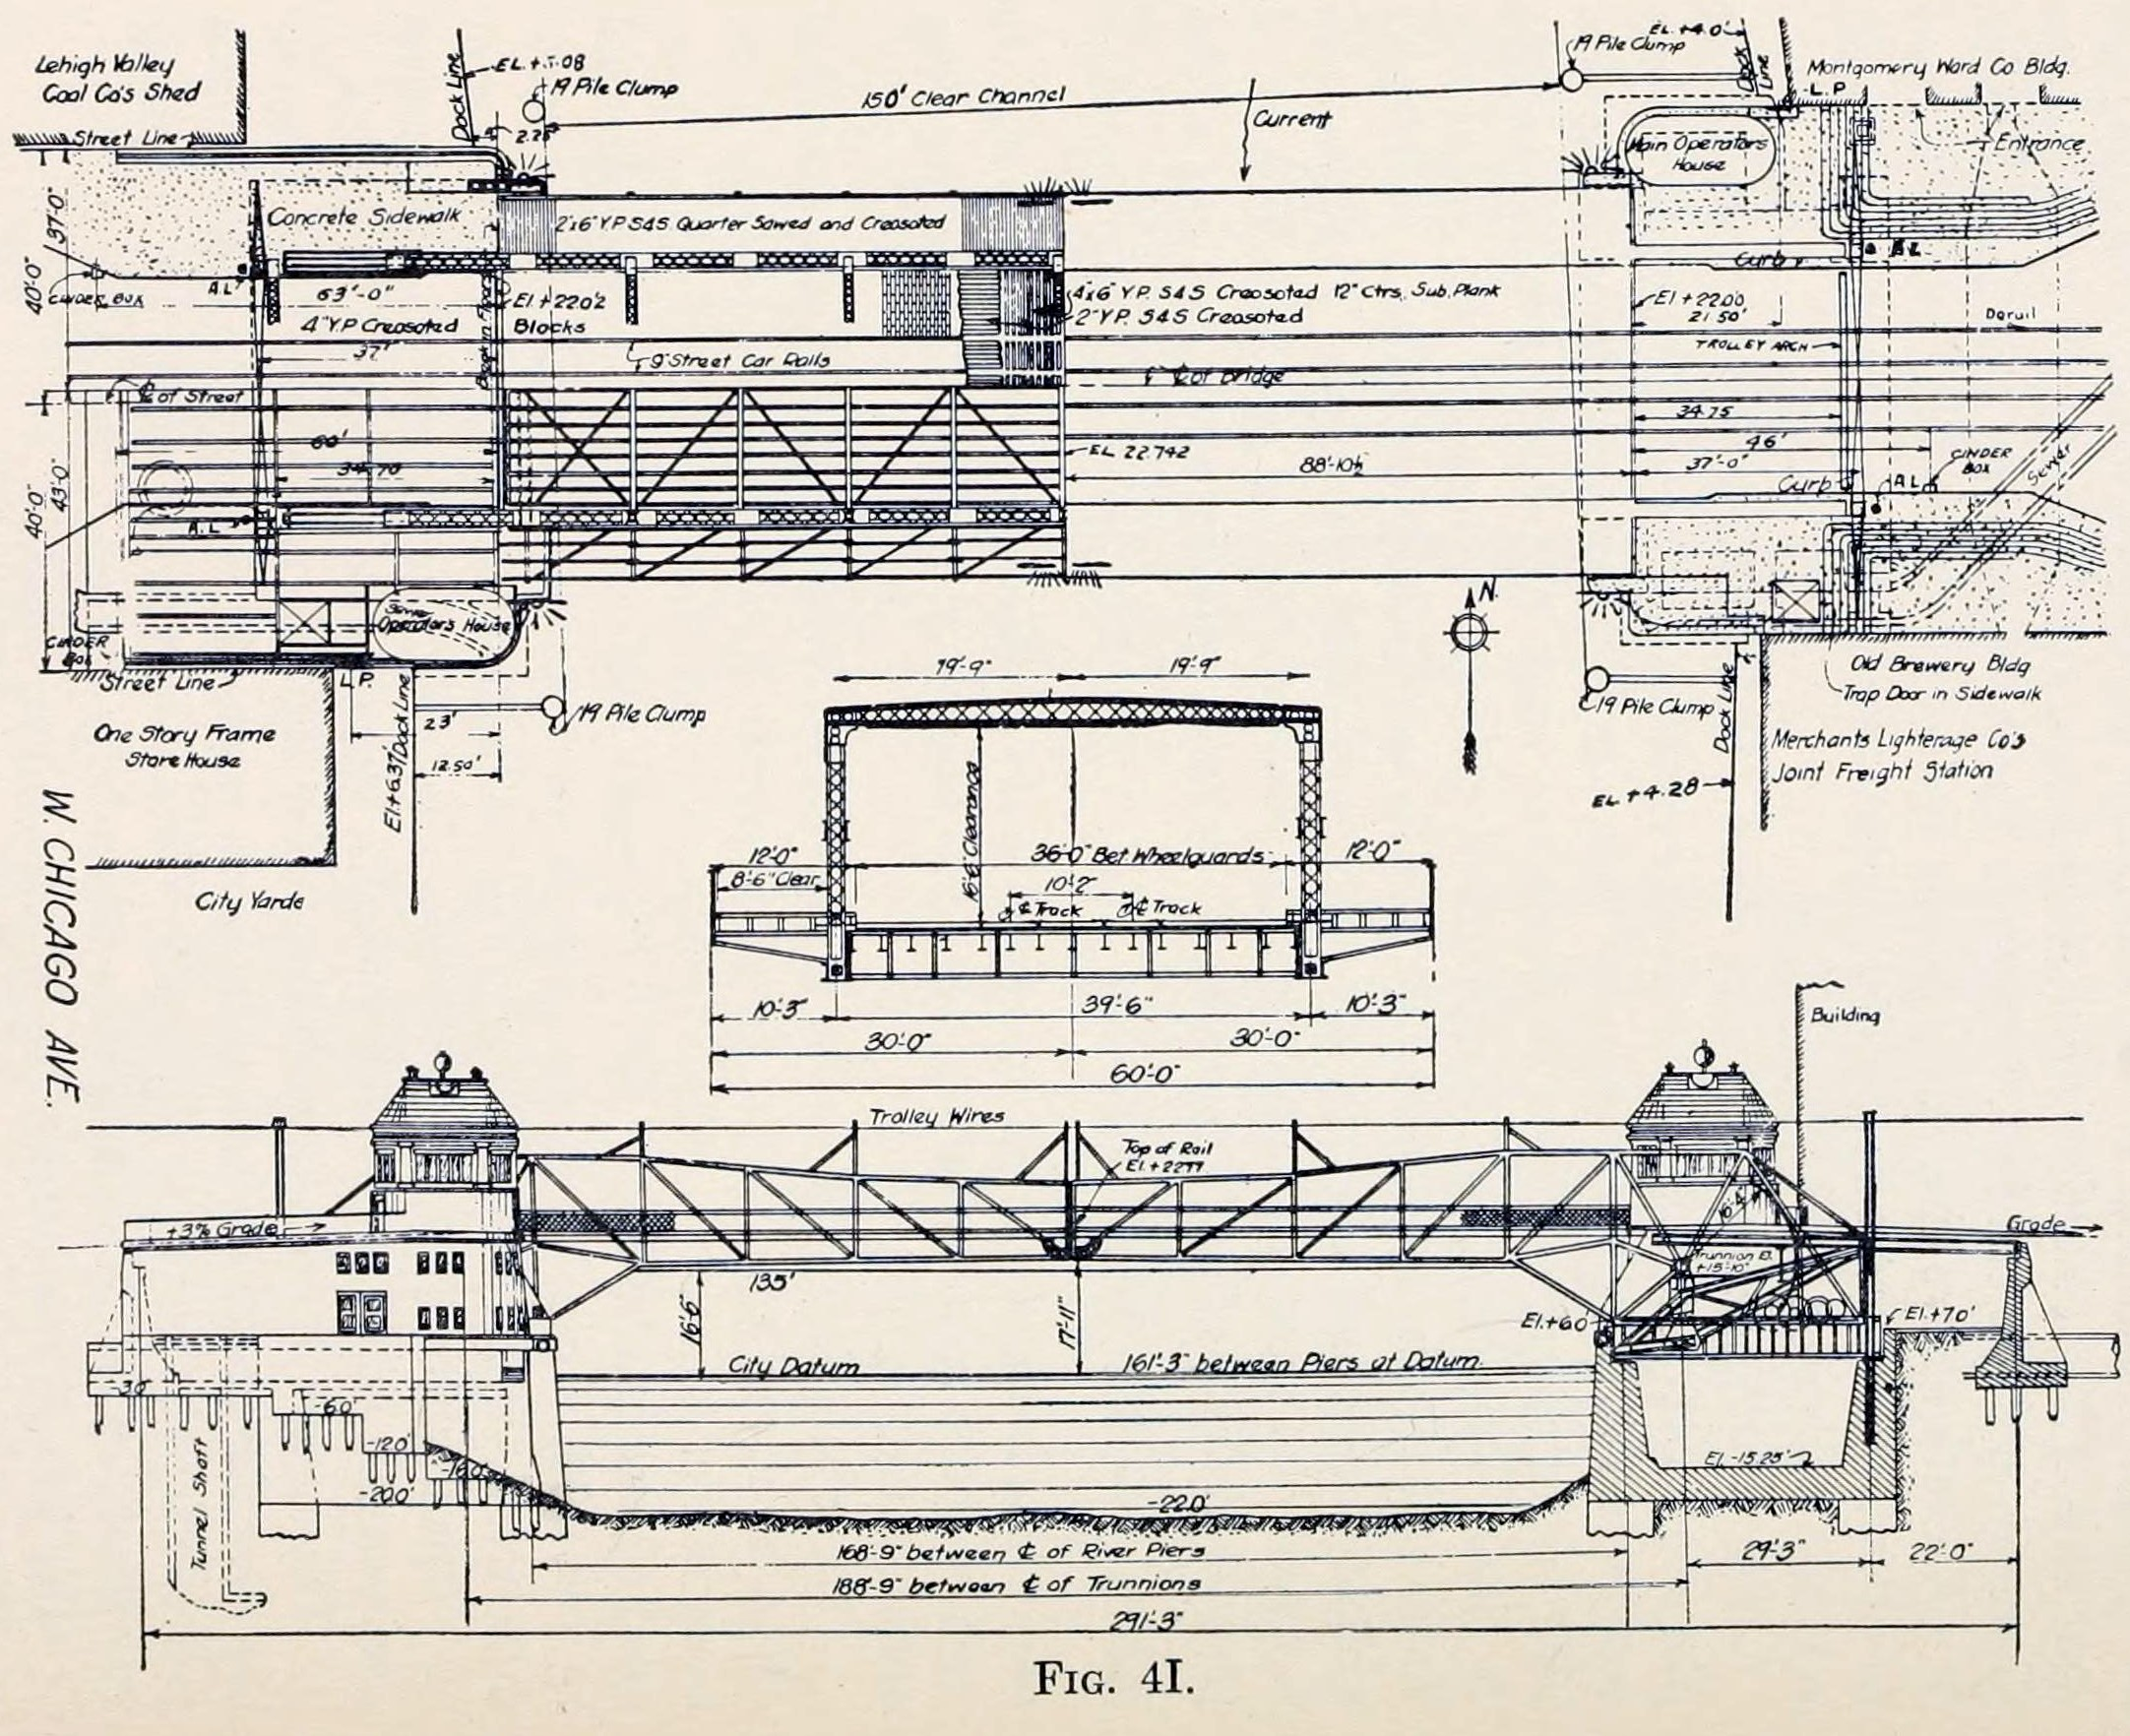 Fine Architectural Drawings Of Bridges For A Bridge Memorial In S